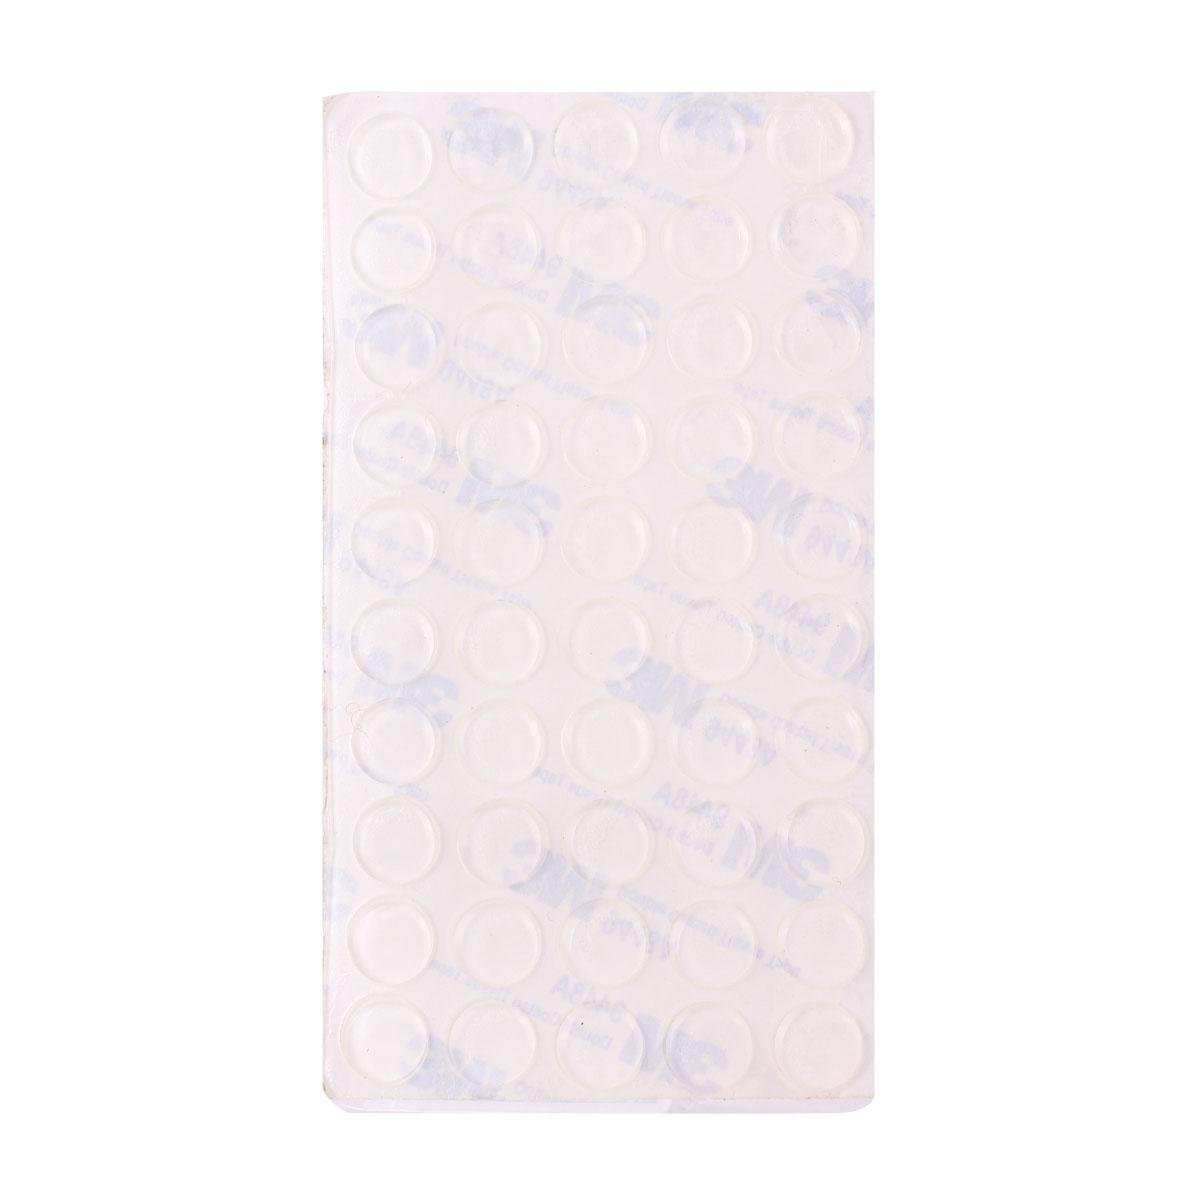 Yevita 50pcs Round Self Stick Pad Sound Dampening Door Domed Bumpers Rubber Stop Protector